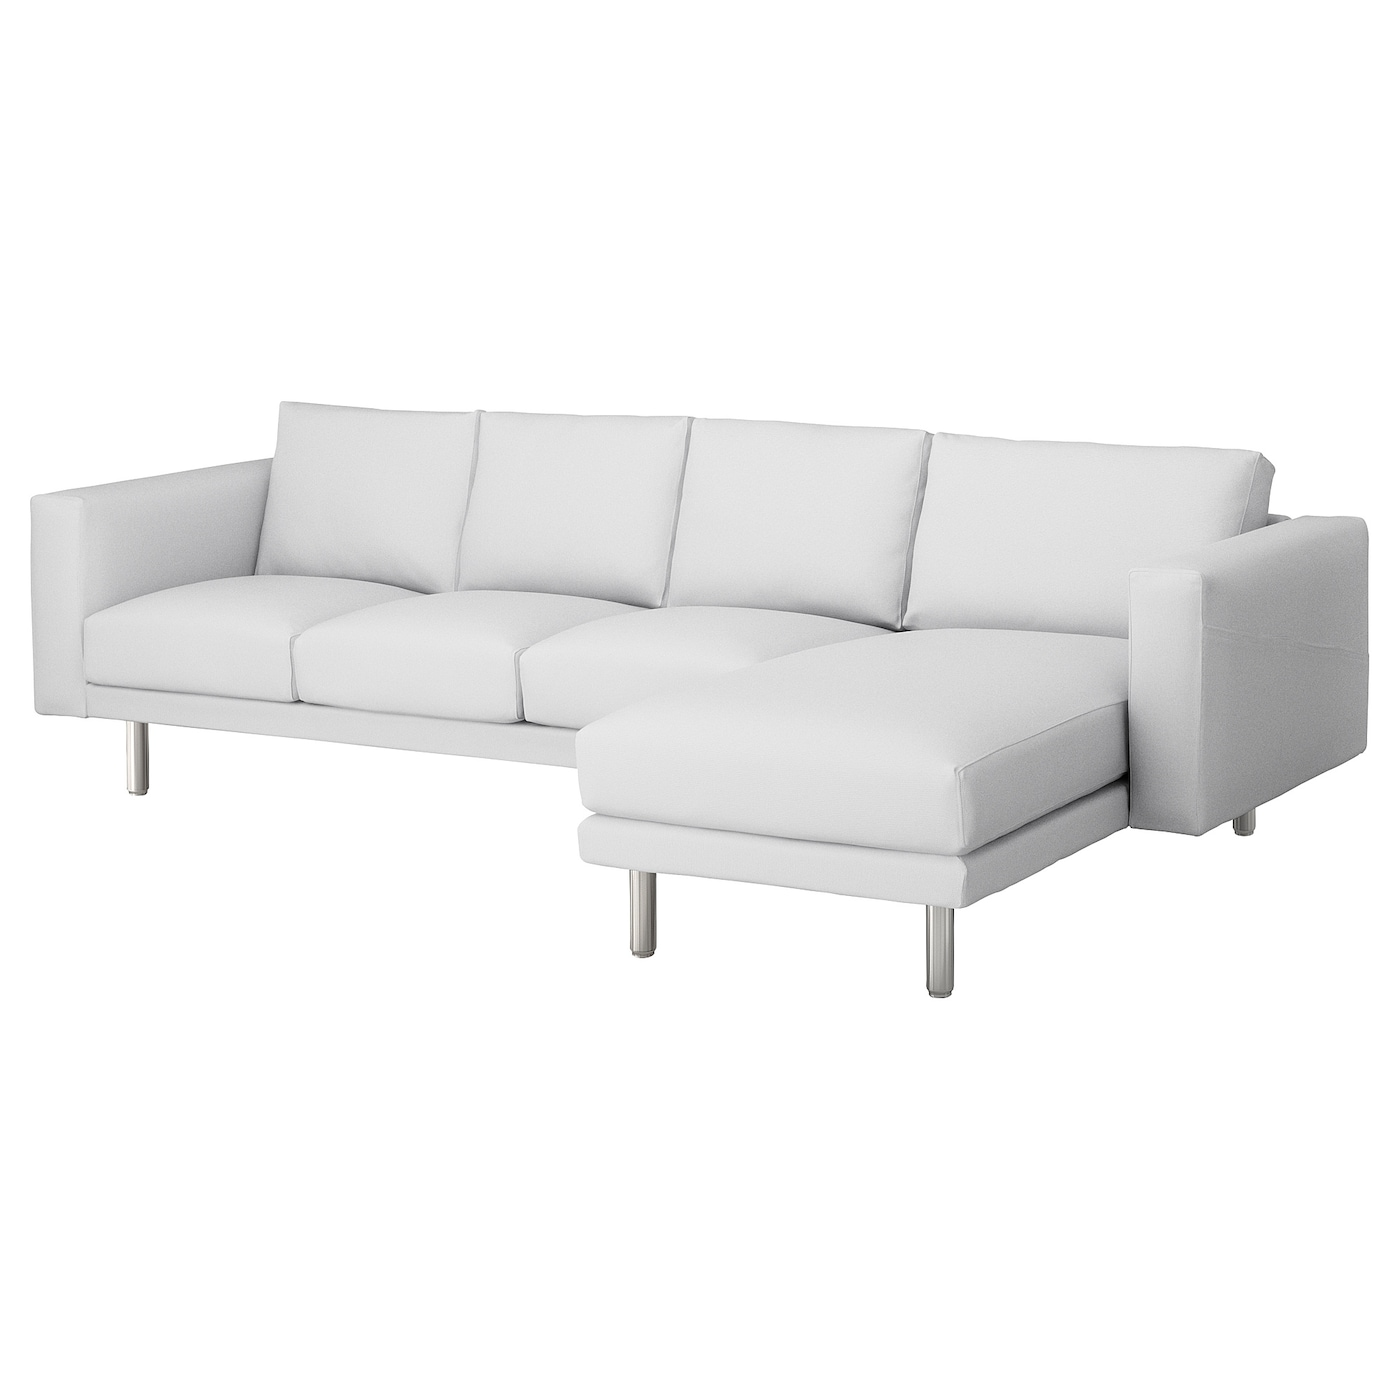 Norsborg 4 seat sofa with chaise longue finnsta white for 5 seater sofa with chaise